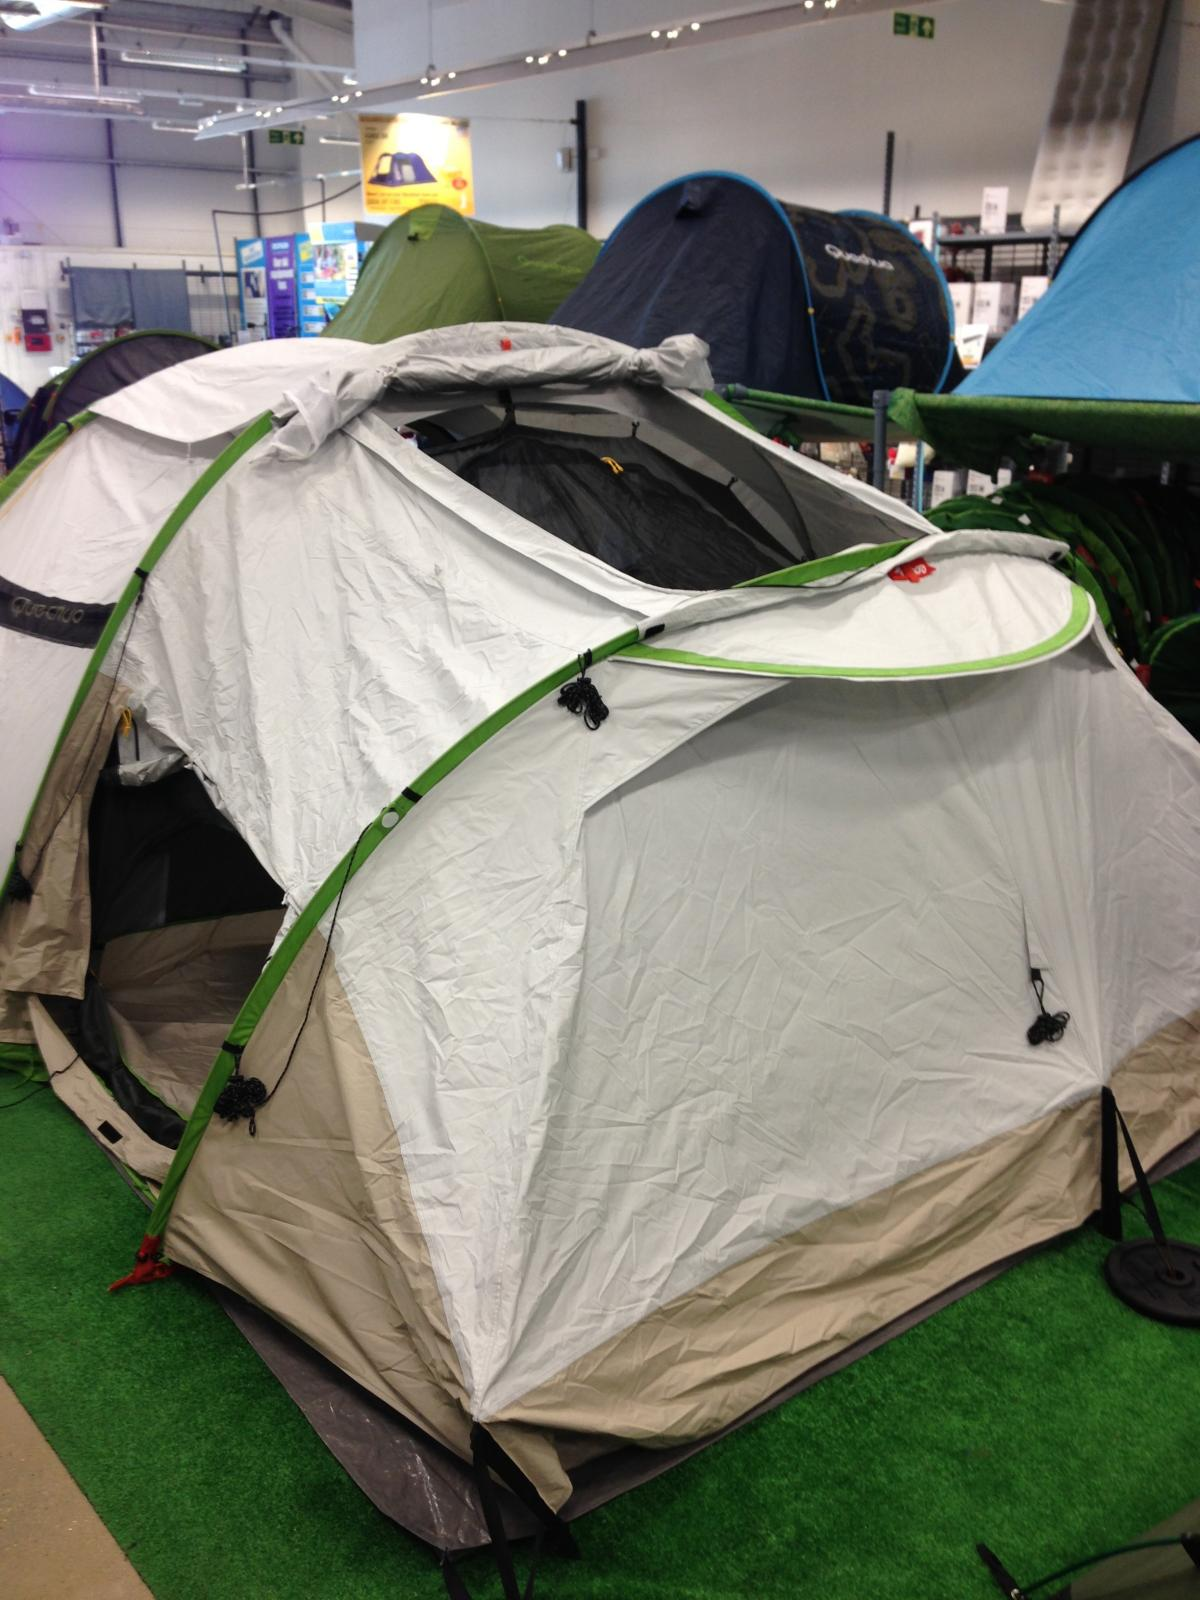 post-12157-0-56031700-1370420612_thumb.j & I saw this tent and thought of us - The Astro Lounge - Stargazers ...